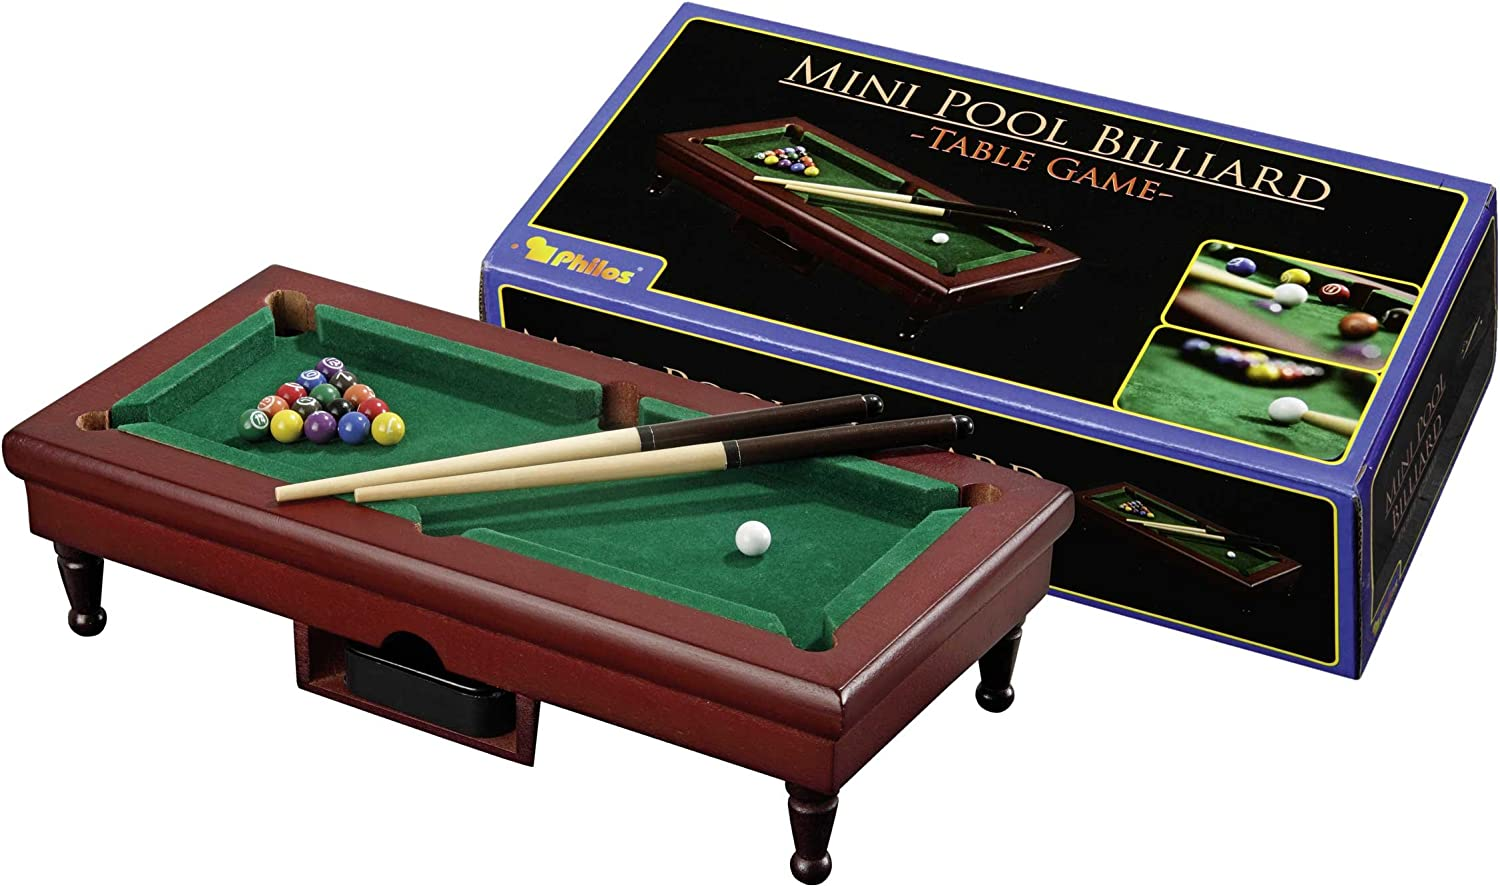 Philos 3231 - Billar en Miniatura: Philos 3231 - Mini Pool ...